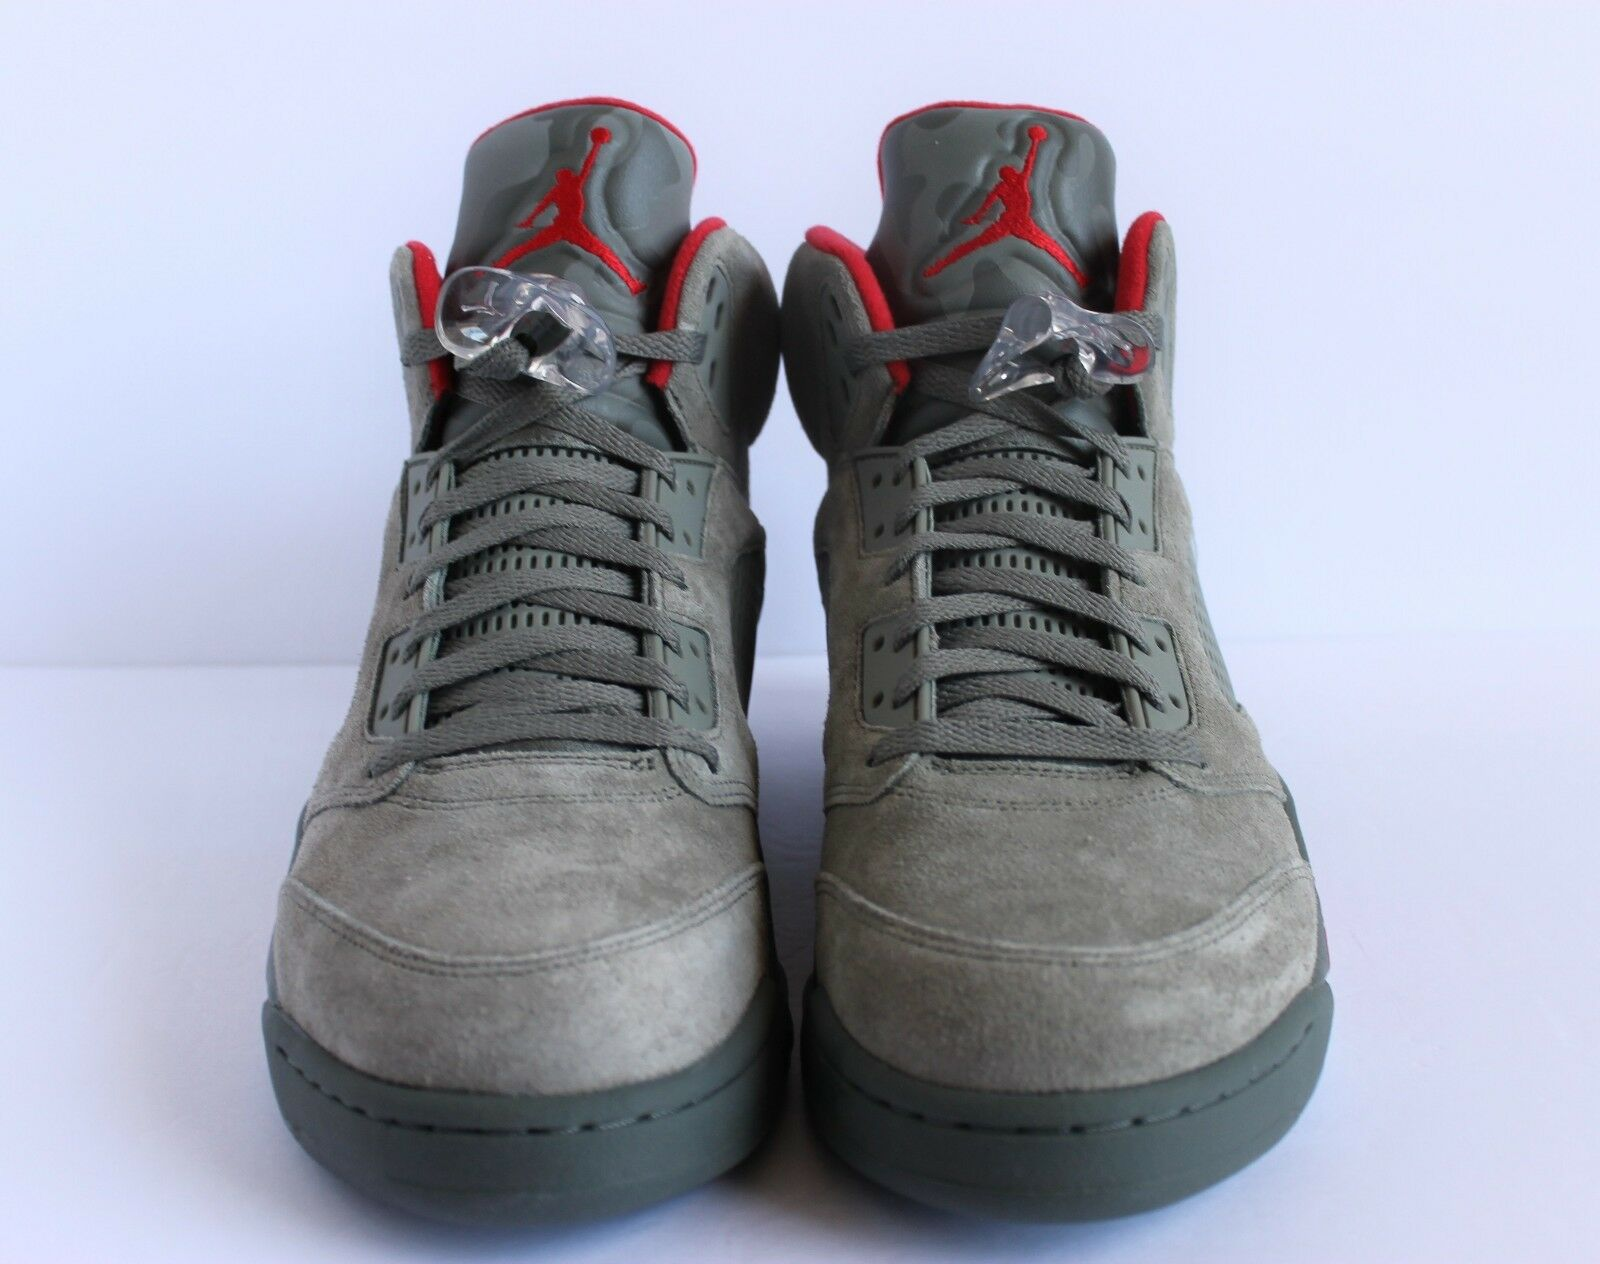 NIKE AIR JORDAN 5 RETRO CAMO DARK SZ STUCCO-UNIVERSITY RED SZ DARK 13 [136027-051] 77f75d